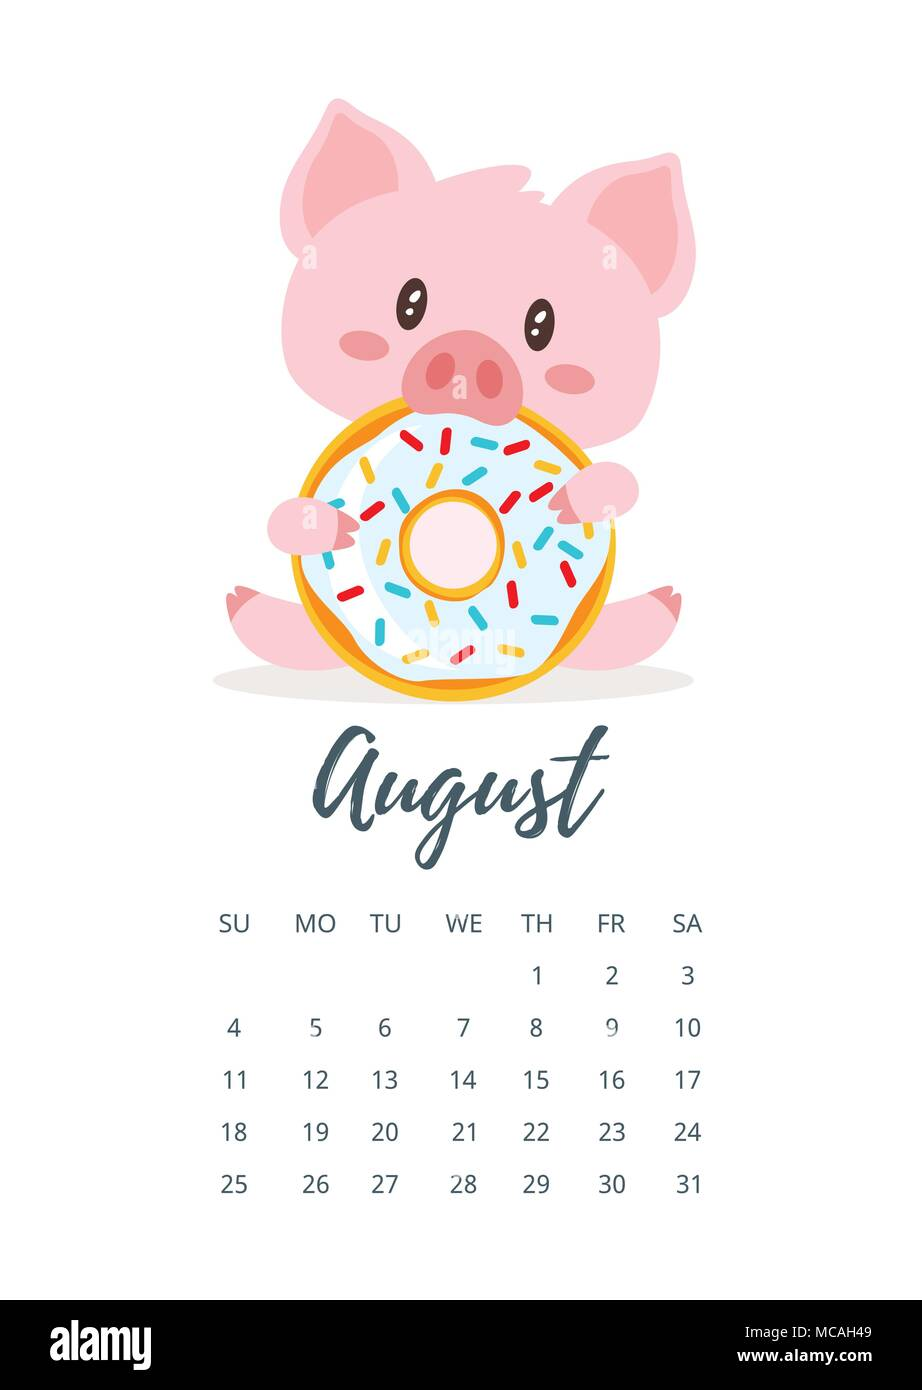 vector cartoon style illustration of august 2019 year calendar page with cute pink pig eating tasty doughnut template for print